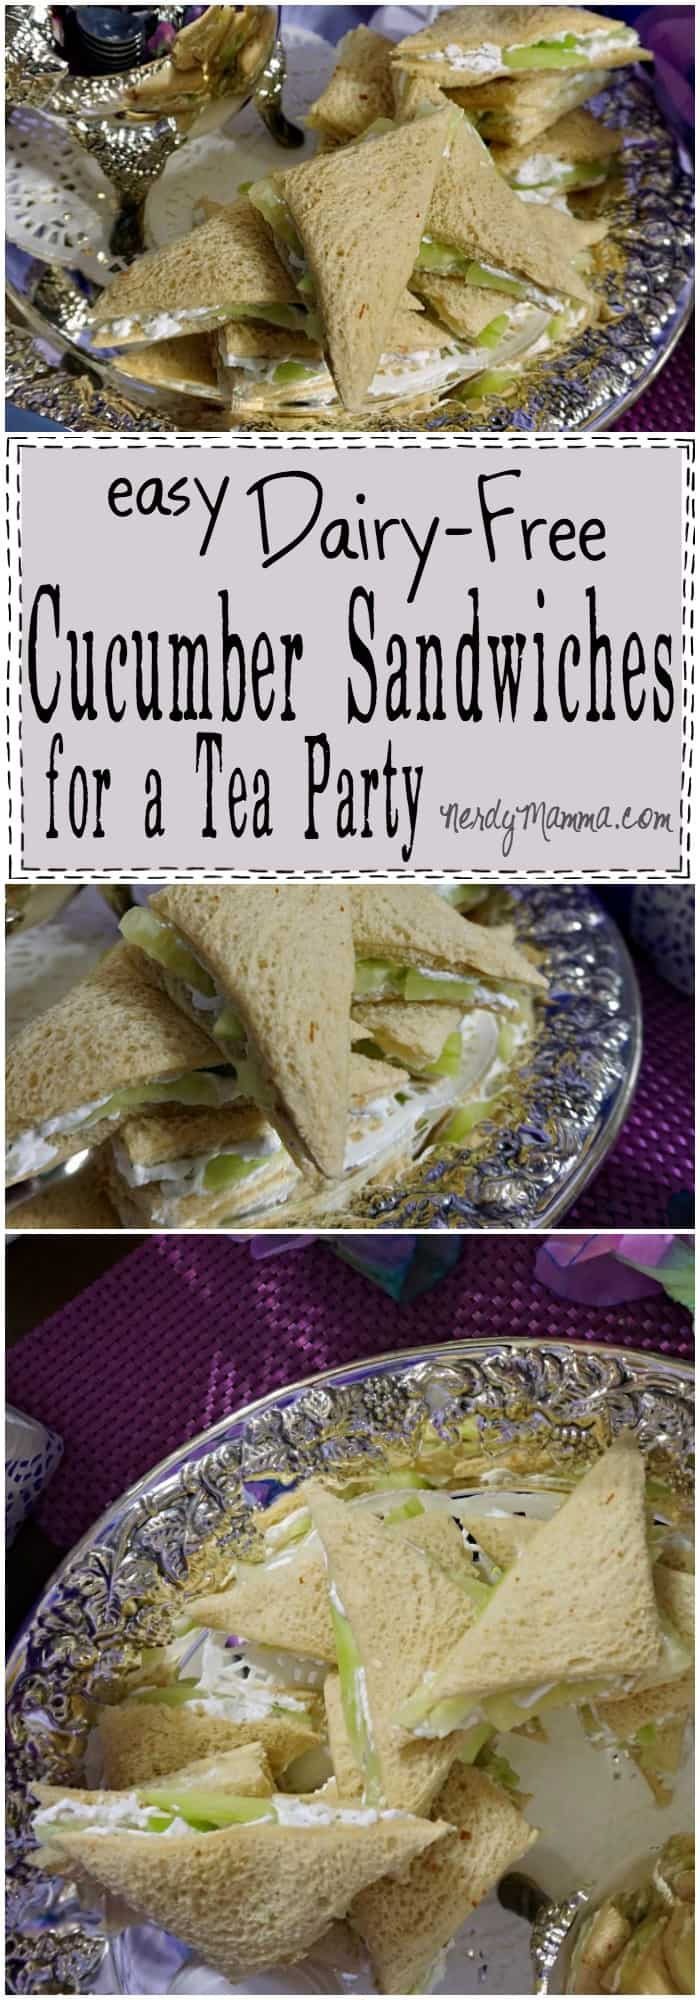 These little Cucumber Sandwiches are made Dairy-Free and they look just like the real thing! LOVE this idea!